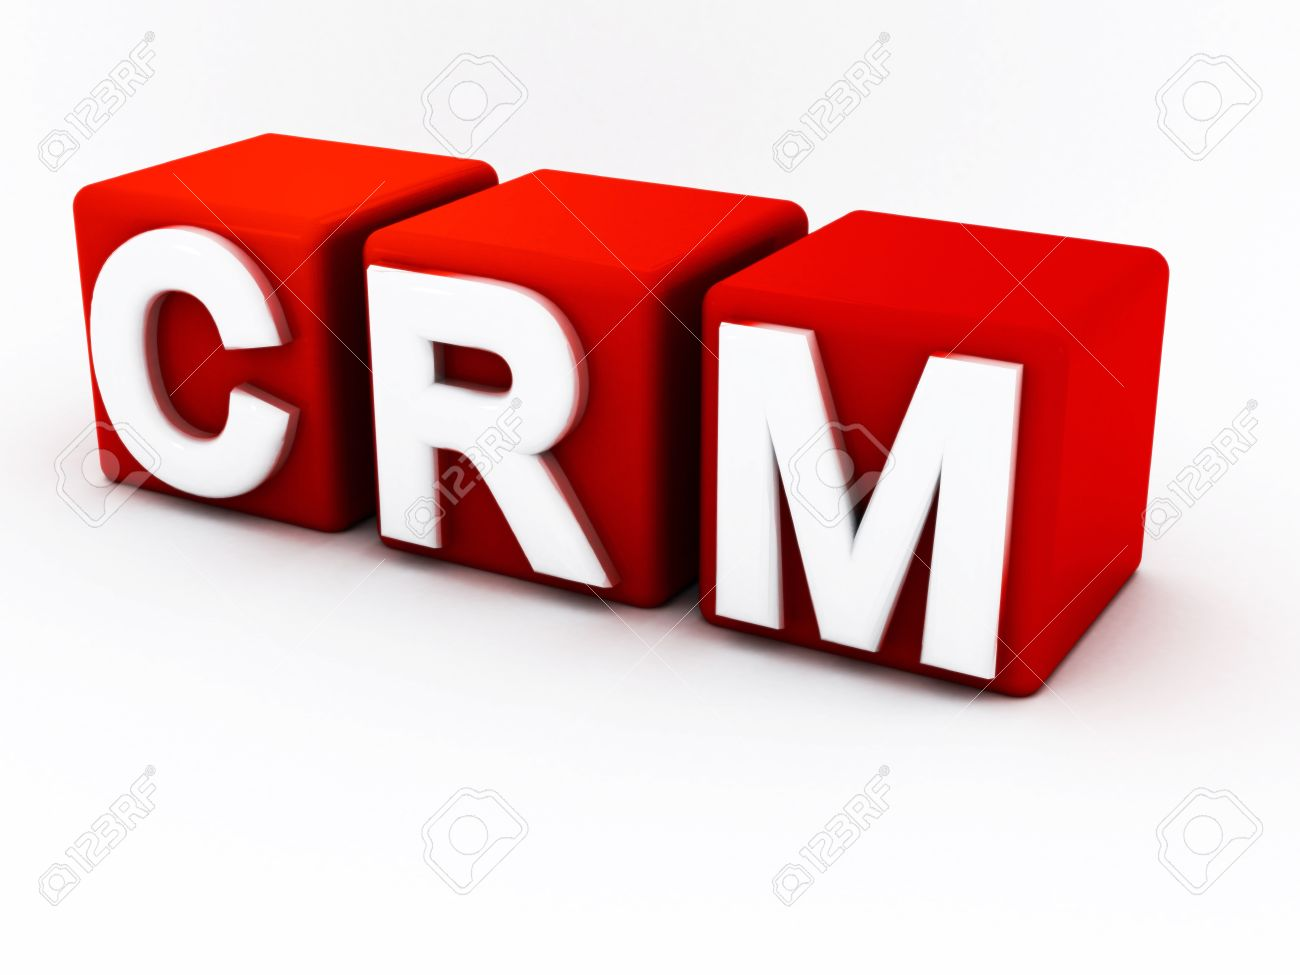 customer relationship management Todo acerca de español customer relationship management software.